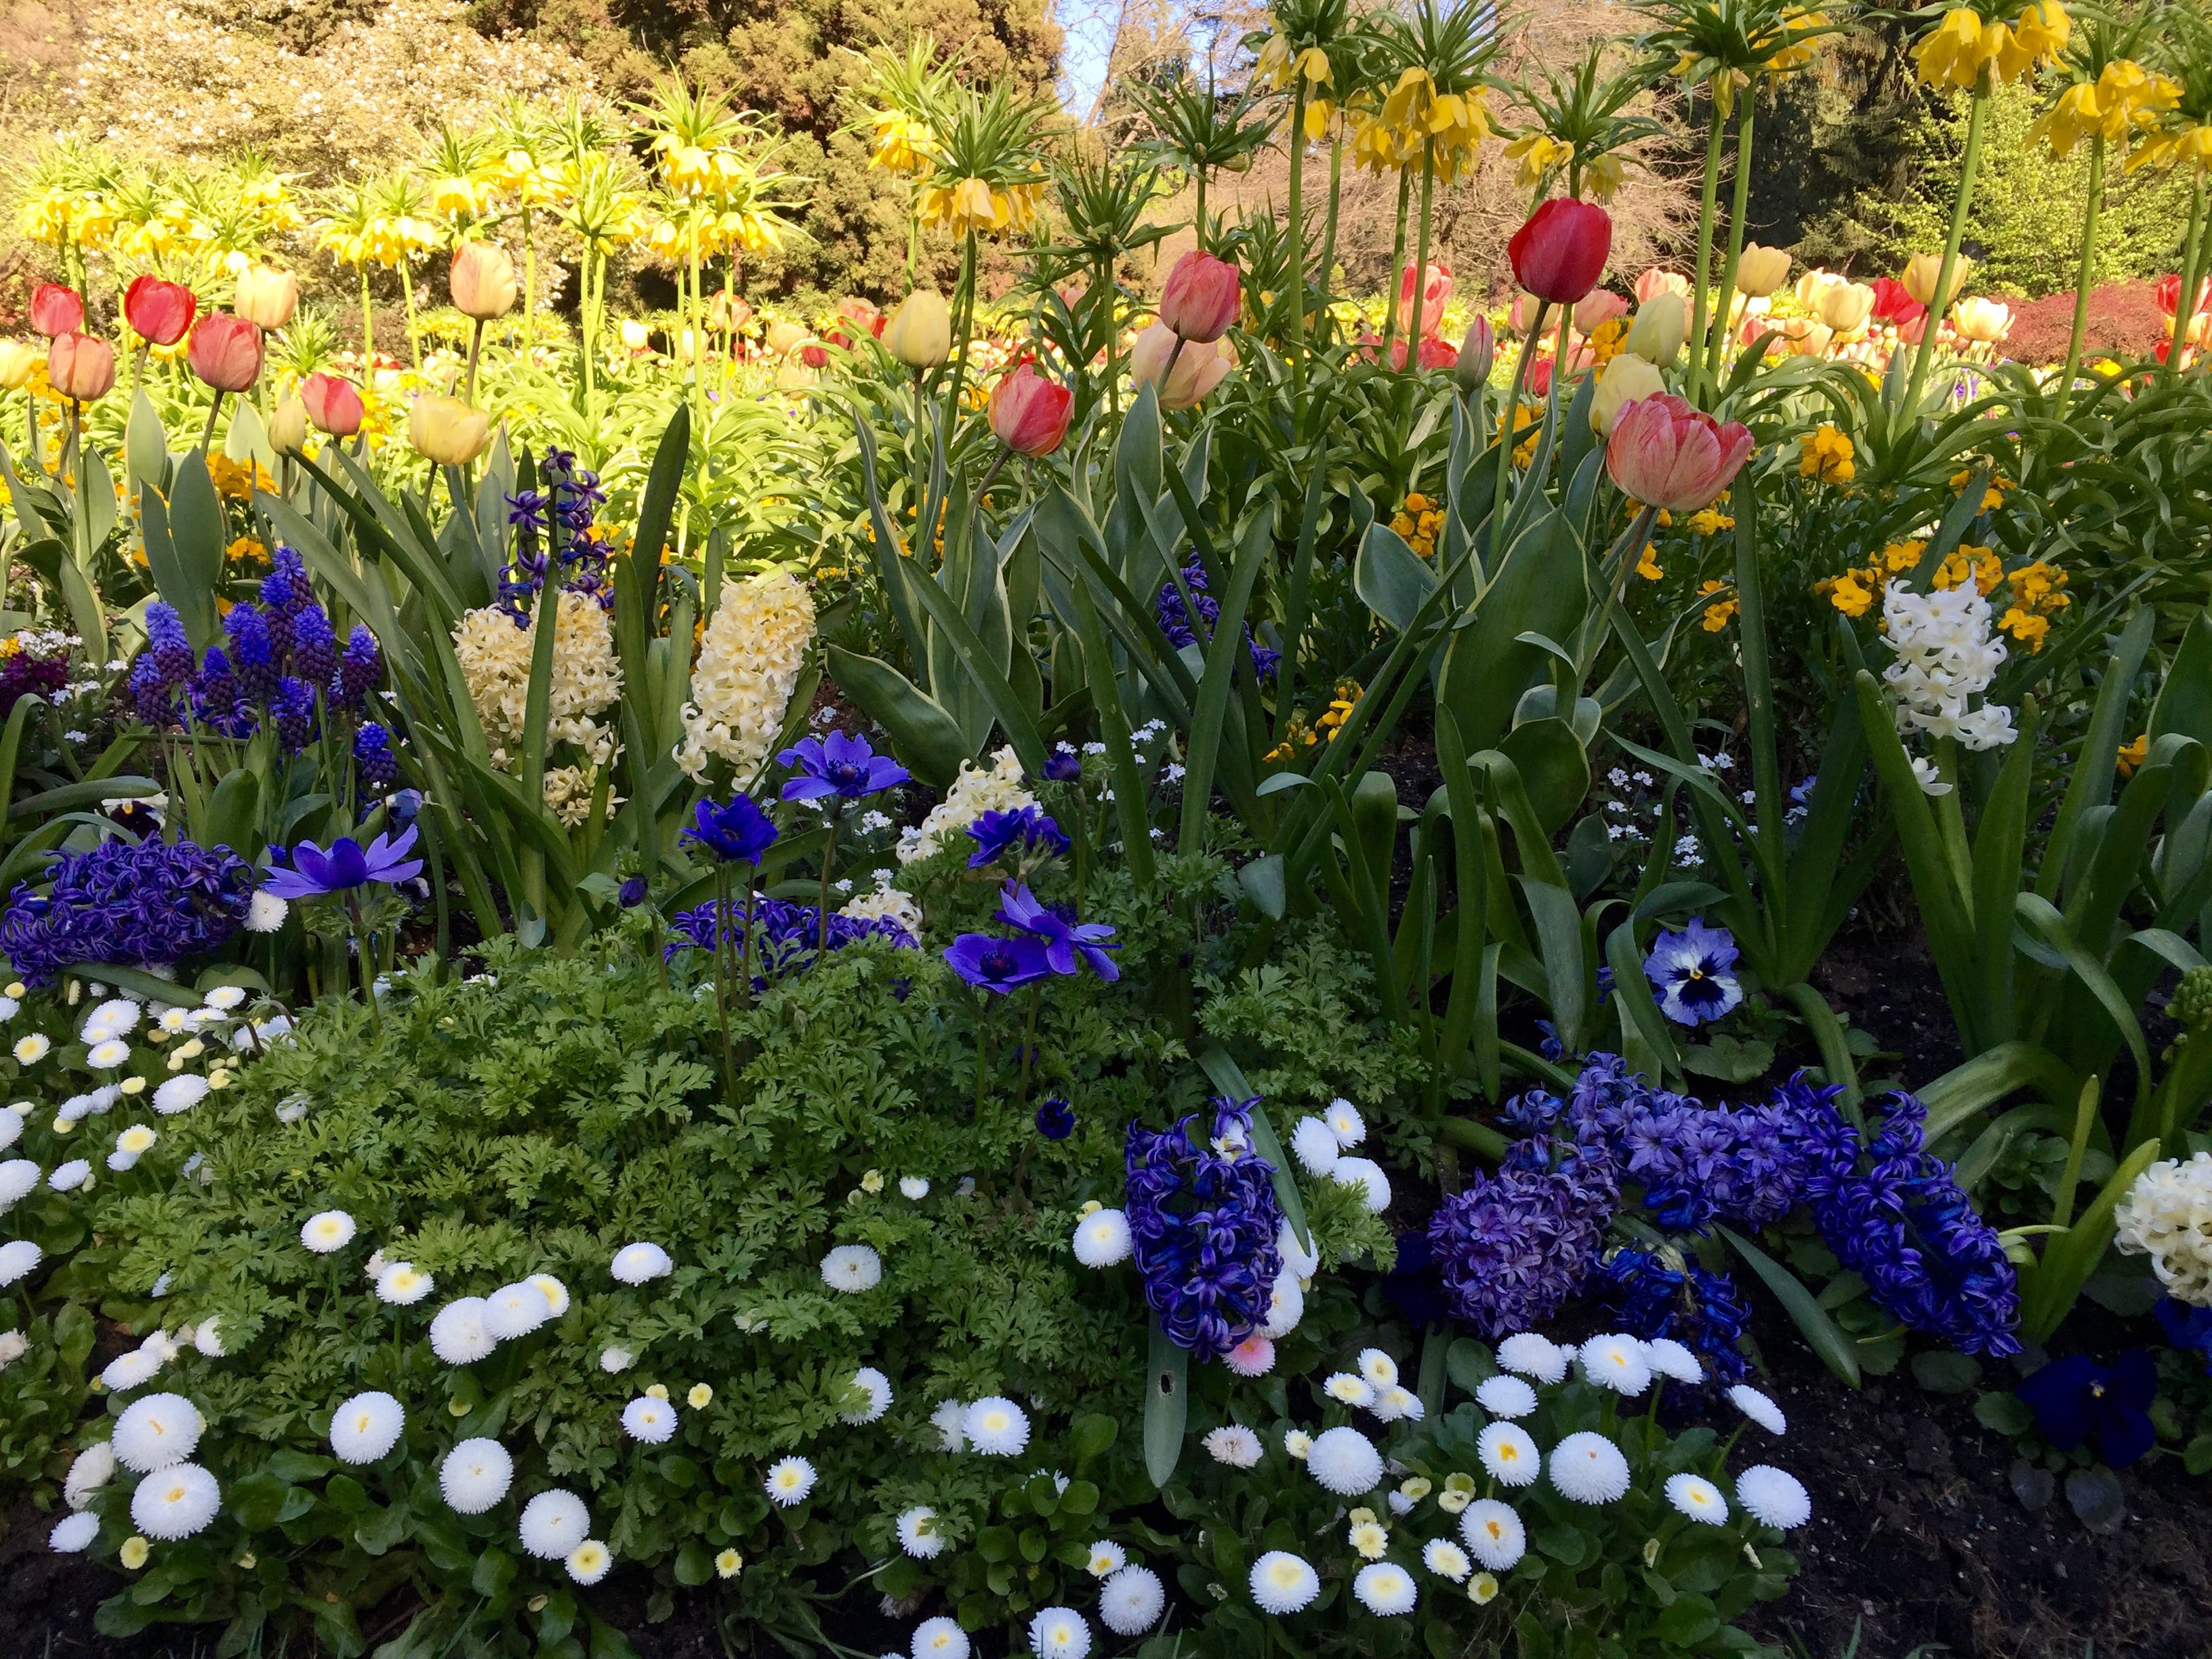 Definitely take an entire afternoon to explore Stanley Park. The flower gardens are incredible and I couldn't believe they actually could have such pretty flowers in a public garden.